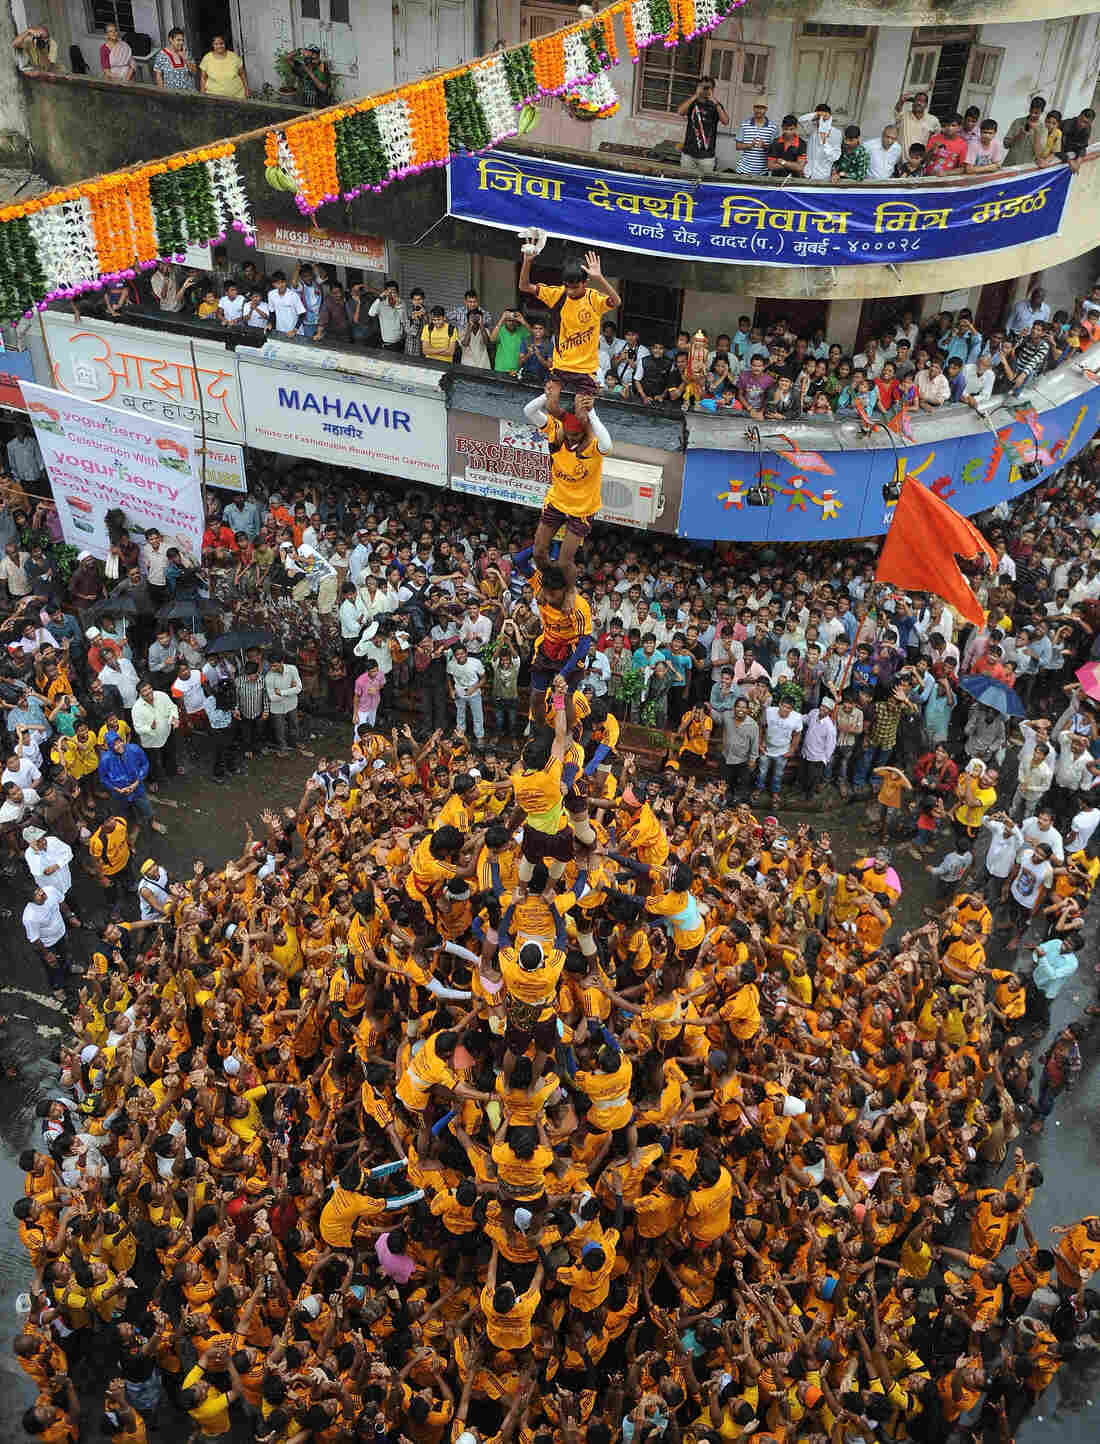 Almost to the top: Men and boys built this human pyramid in Mumbai as part of today's Janmashtami celebration. Their goal — a clay pot — is suspended over the street.